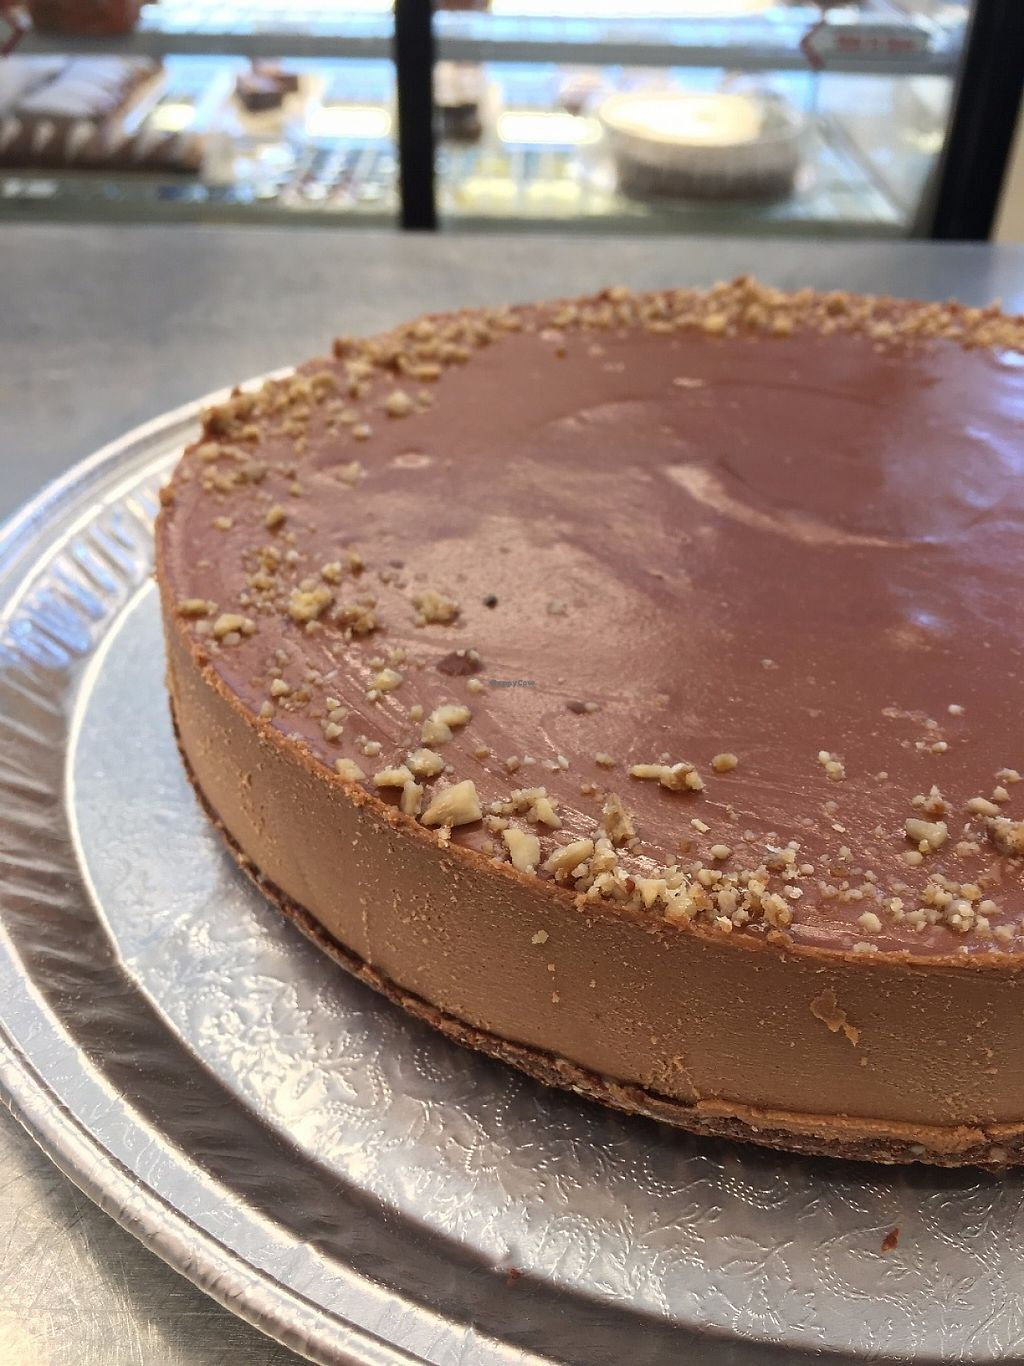 """Photo of Springhouse  by <a href=""""/members/profile/JBD"""">JBD</a> <br/>Mocha Cheesecake <br/> May 24, 2017  - <a href='/contact/abuse/image/91739/262130'>Report</a>"""